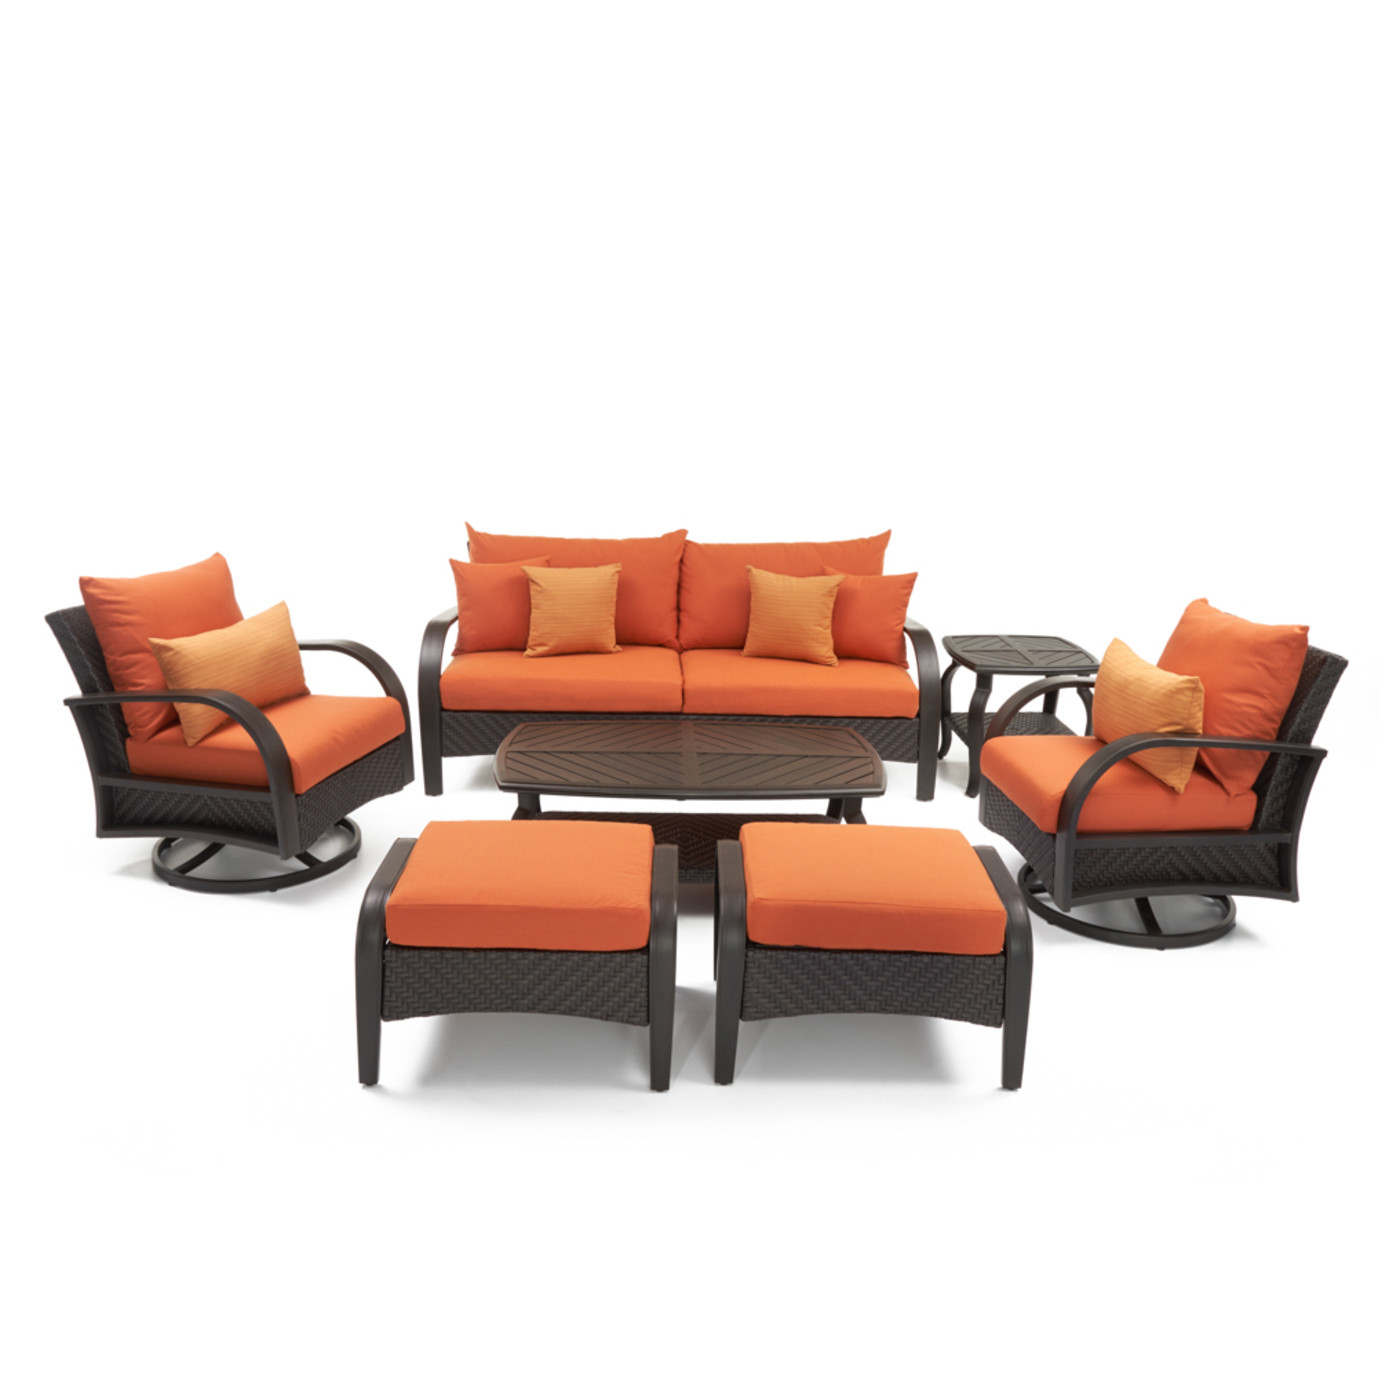 Barcelo™ 7 Piece Motion Club Deep Seating Set - Tikka Orange